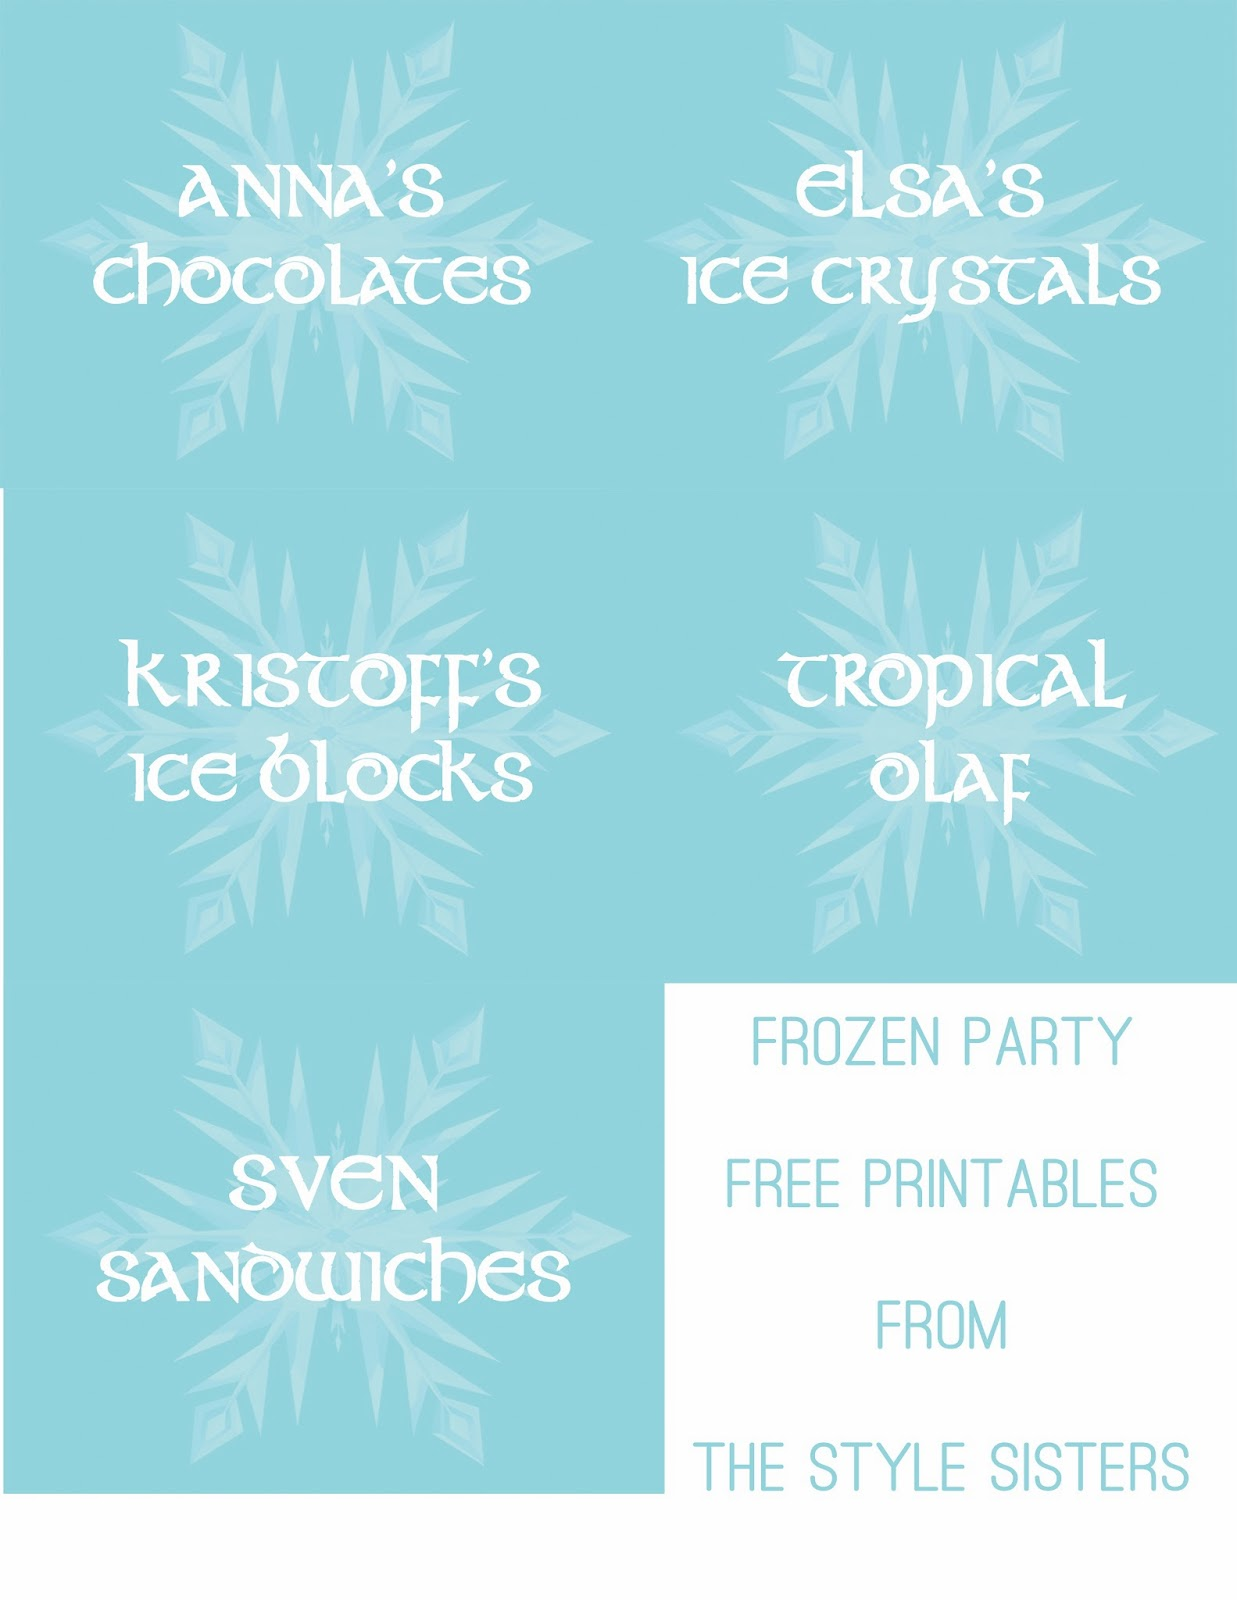 image relating to Frozen Party Food Labels Free Printable identified as Disneys Frozen occasion game titles and Food stuff Labels - The Design Sisters